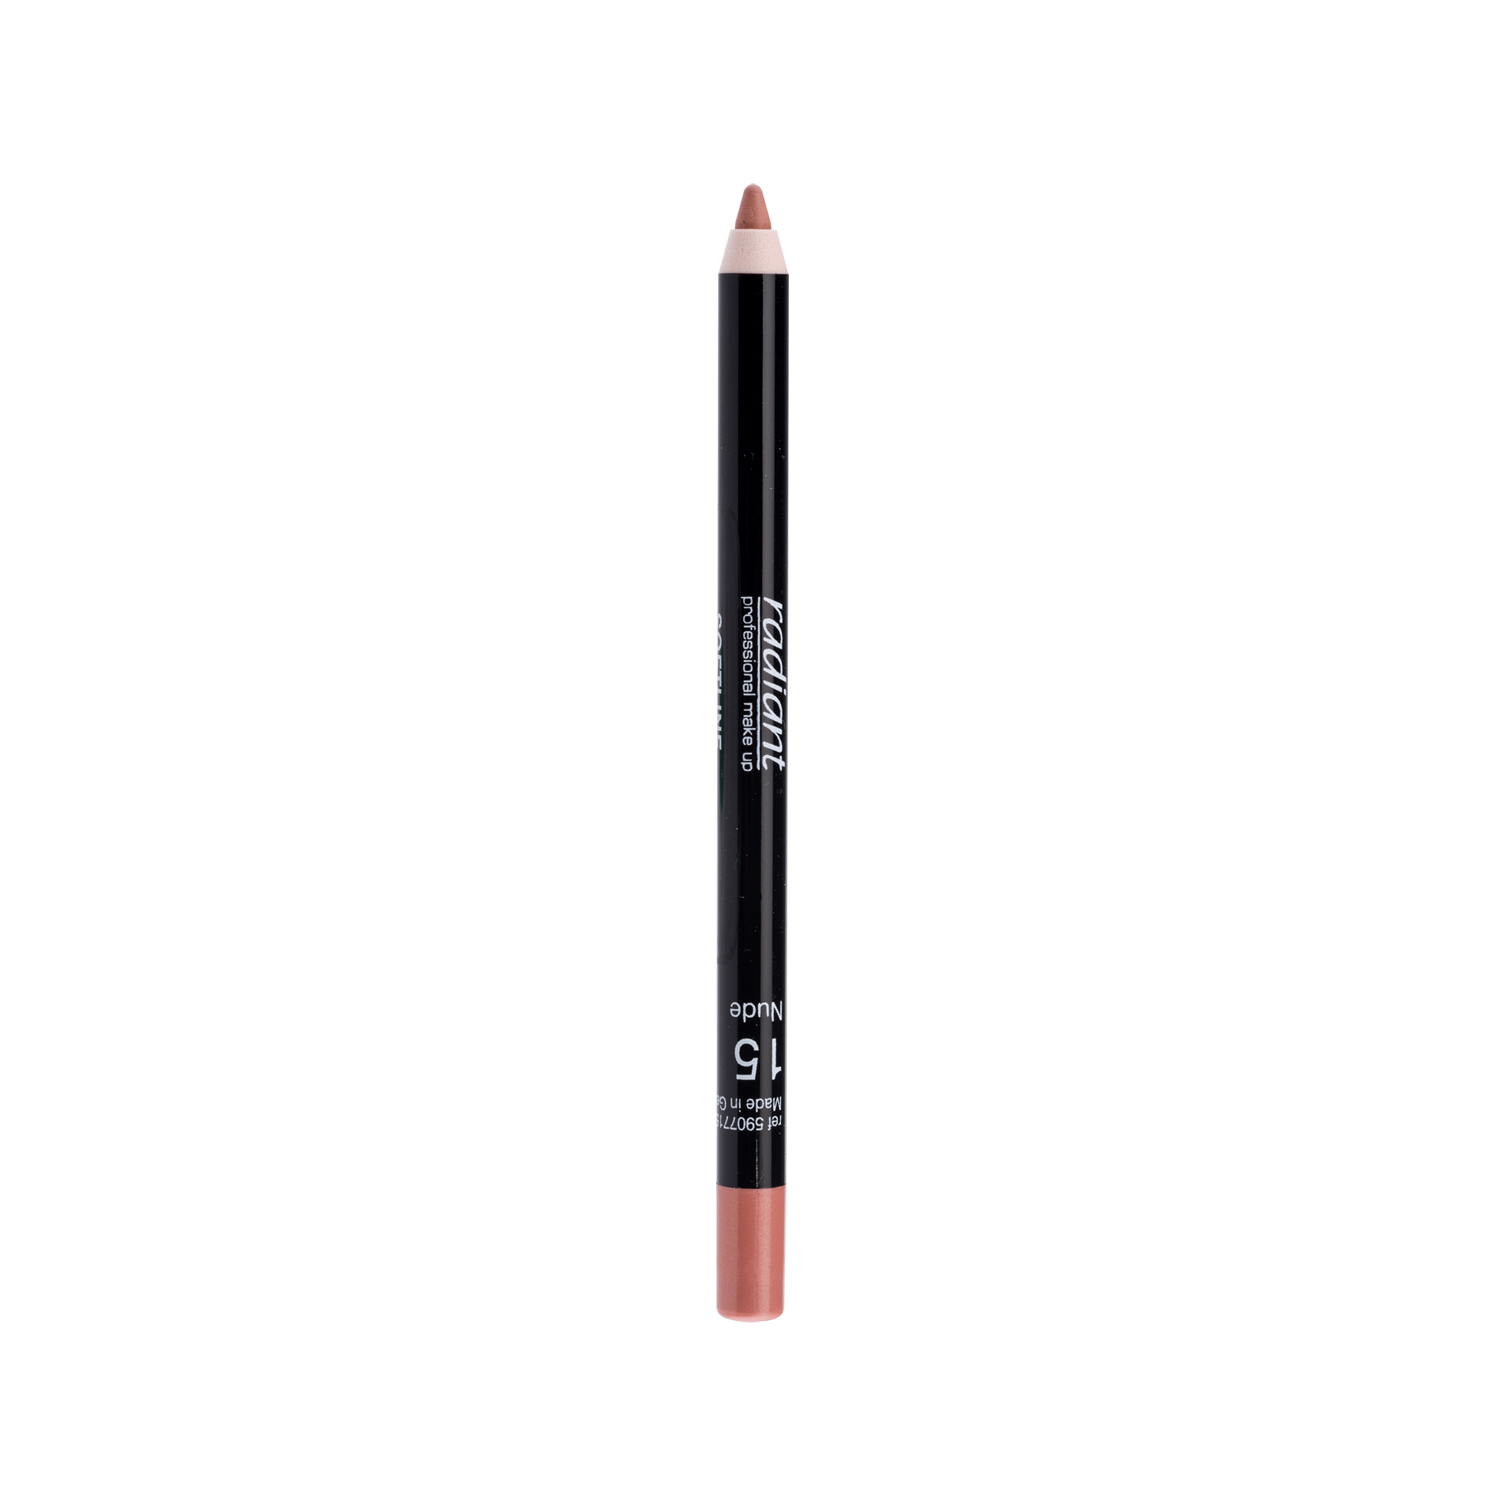 SOFTLINE WATERPROOF LIP PENCIL (15 Nude)